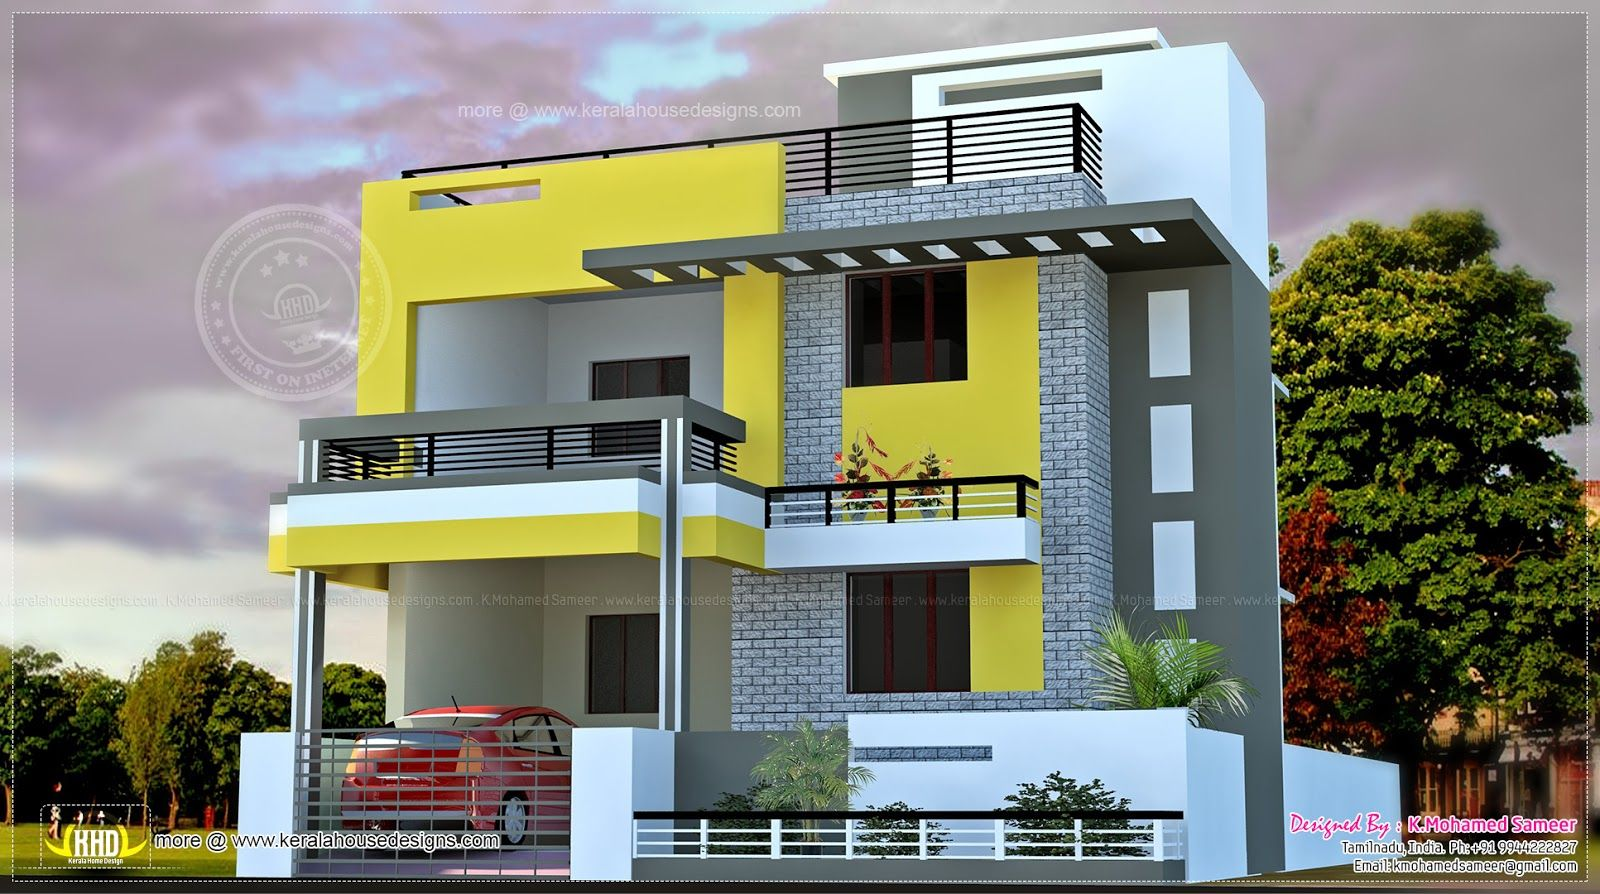 Elevations of residential buildings in indian photo for Best house designs indian style